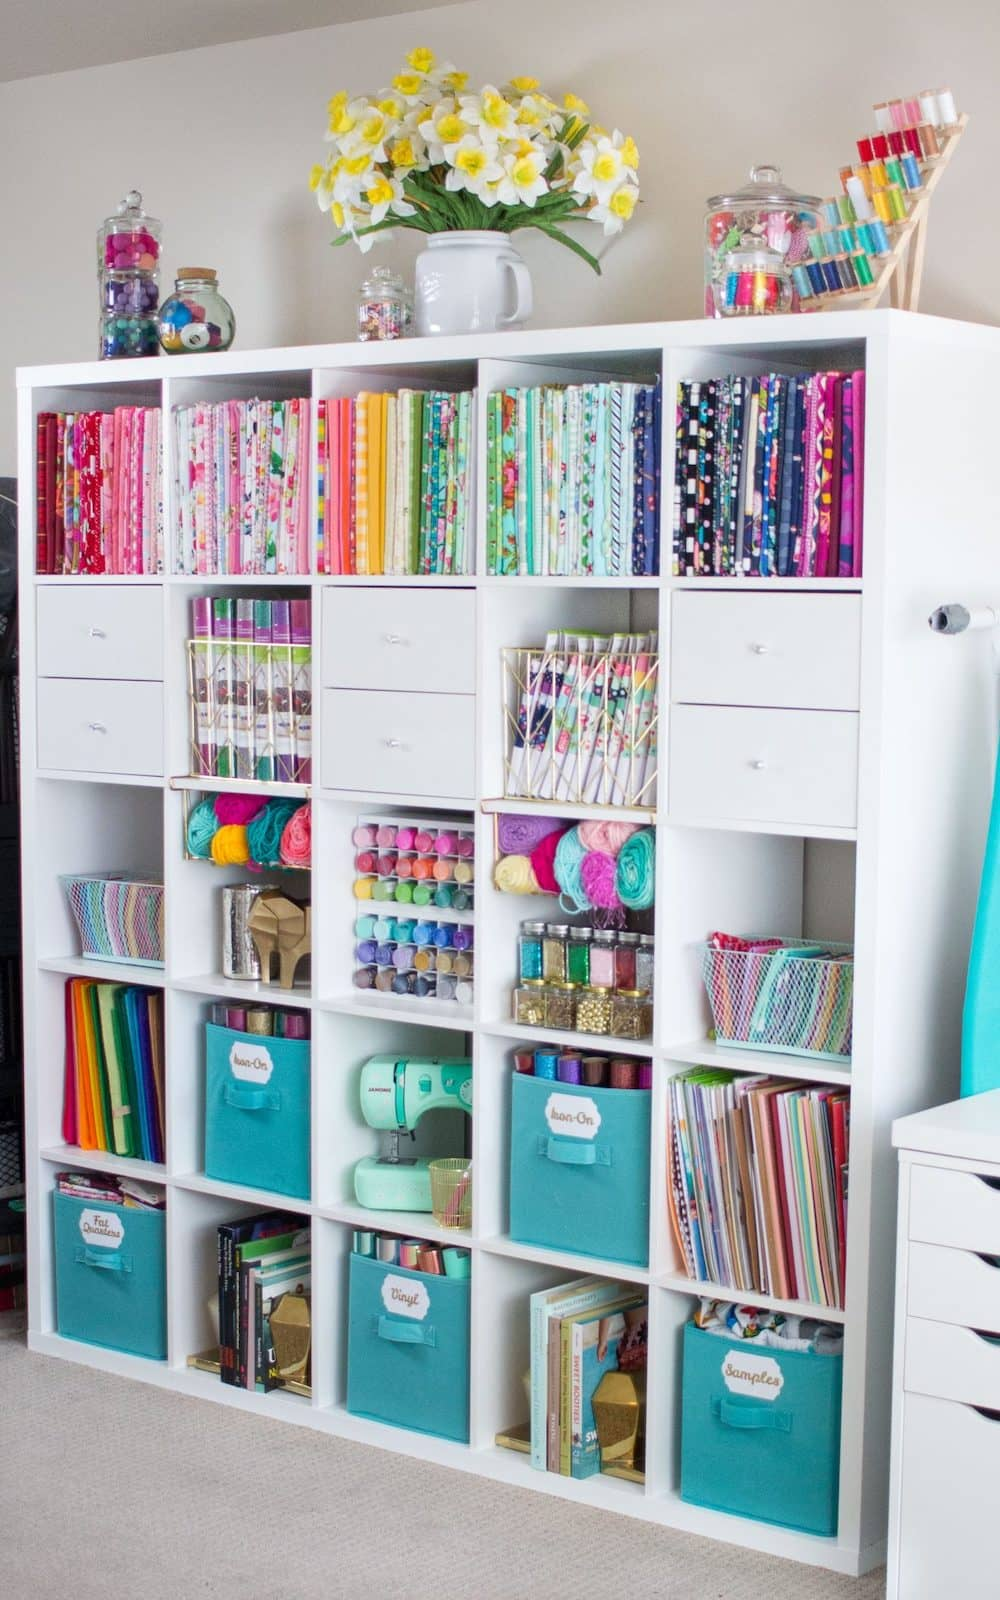 Sewing and fabric shelving unit